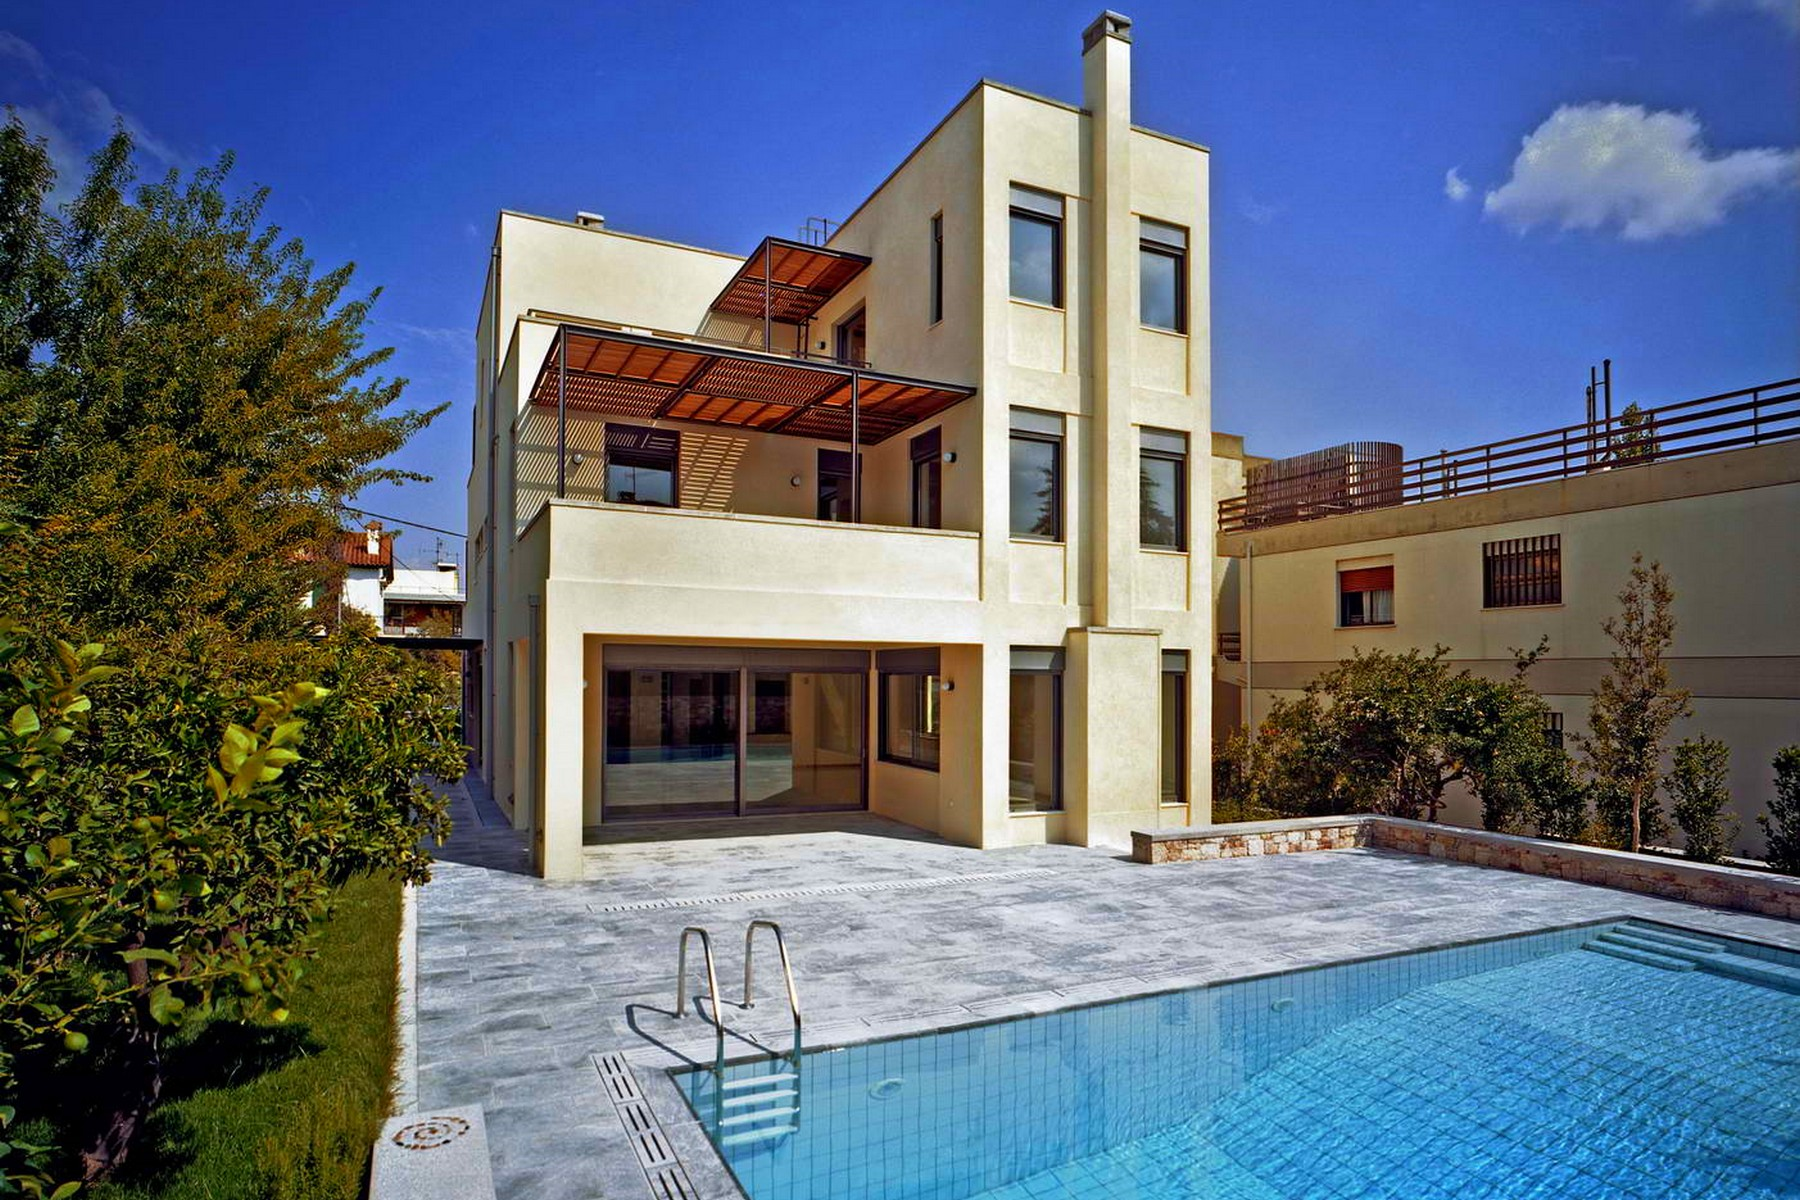 Single Family Home for Sale at Minimal Villa in Filothei Filothei, Athens, Greece Other Attiki, Attiki, 15237 Greece